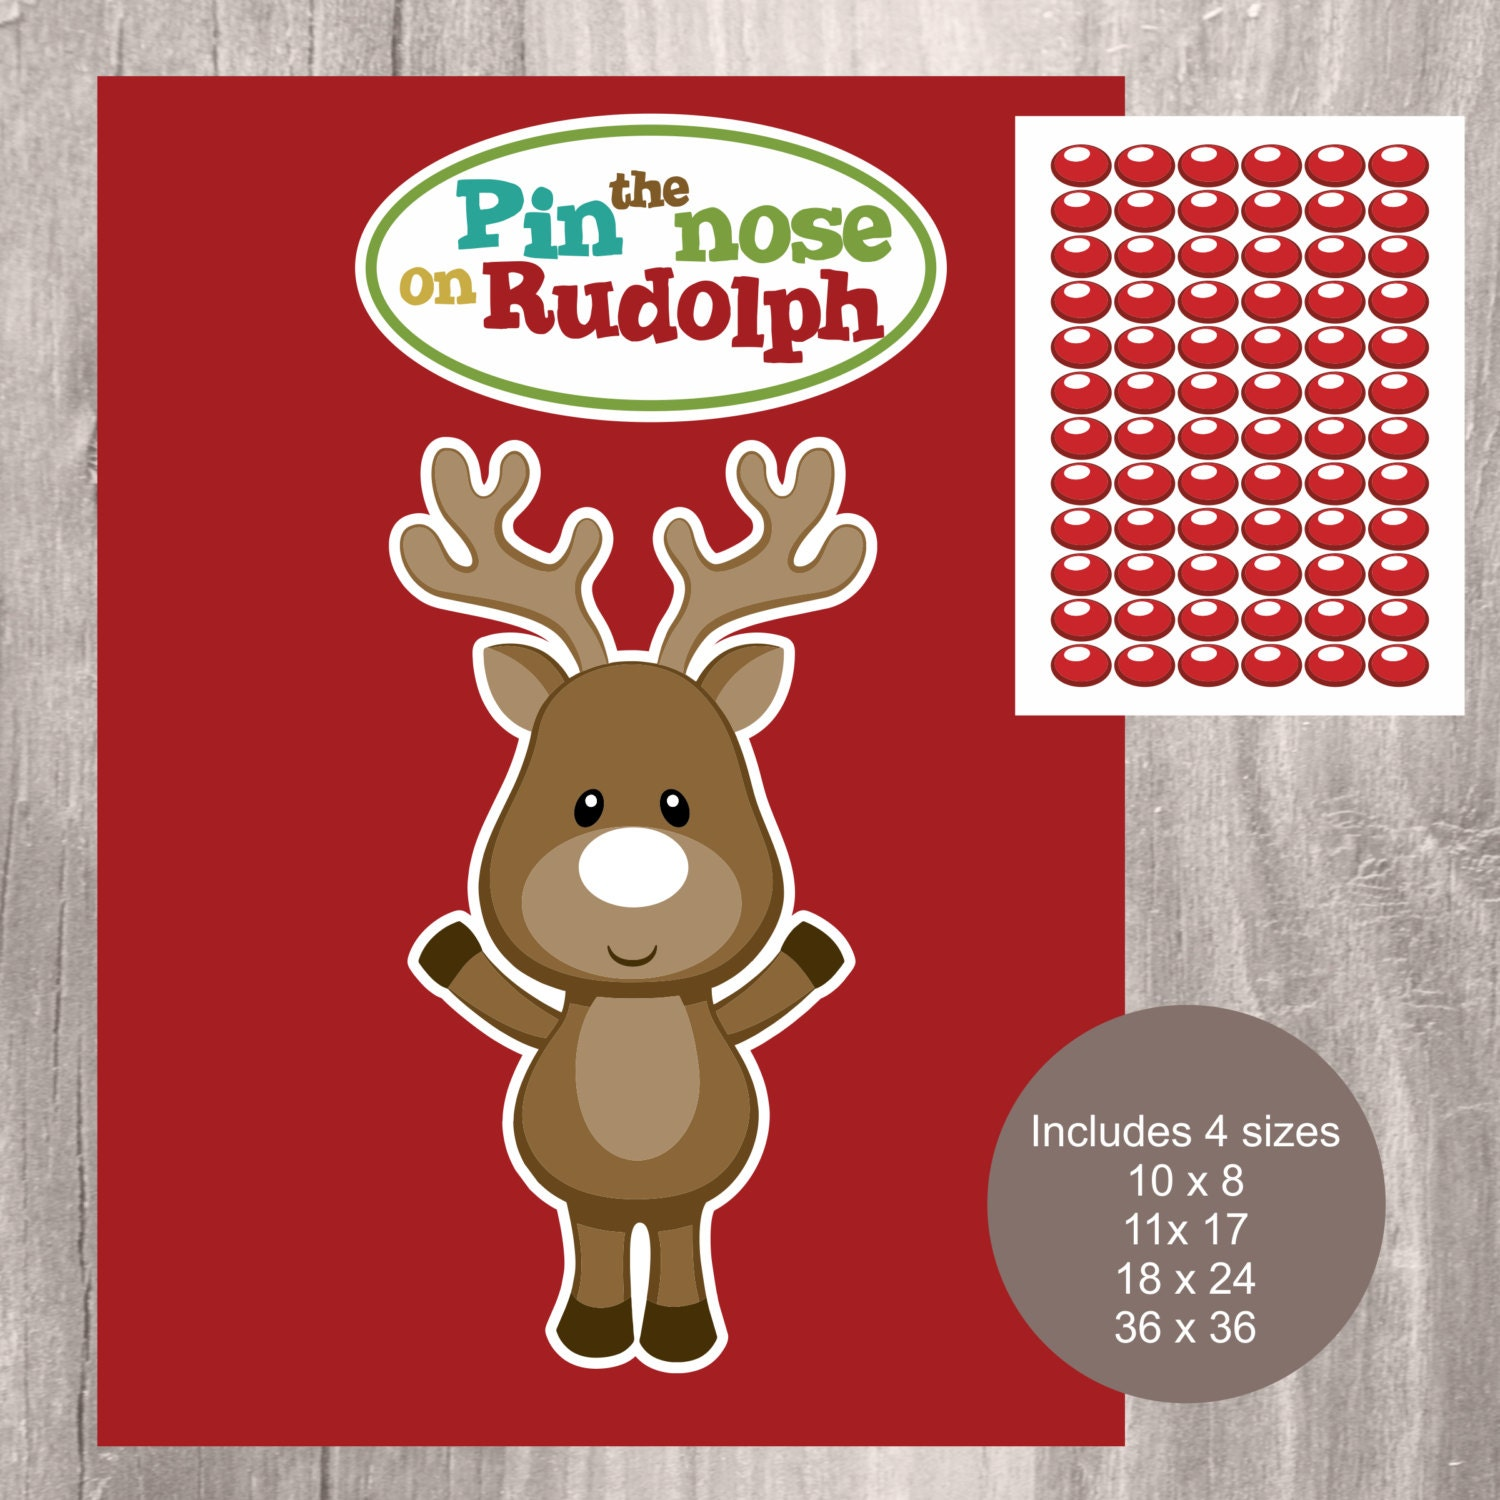 image regarding Pin the Nose on the Reindeer Printable titled Xmas Printable Activity, Pin the Nose upon Rudolph, Instantaneous Obtain, University and Loved ones Social gathering Match, Pin the Nose upon Reindeer Printable Video game